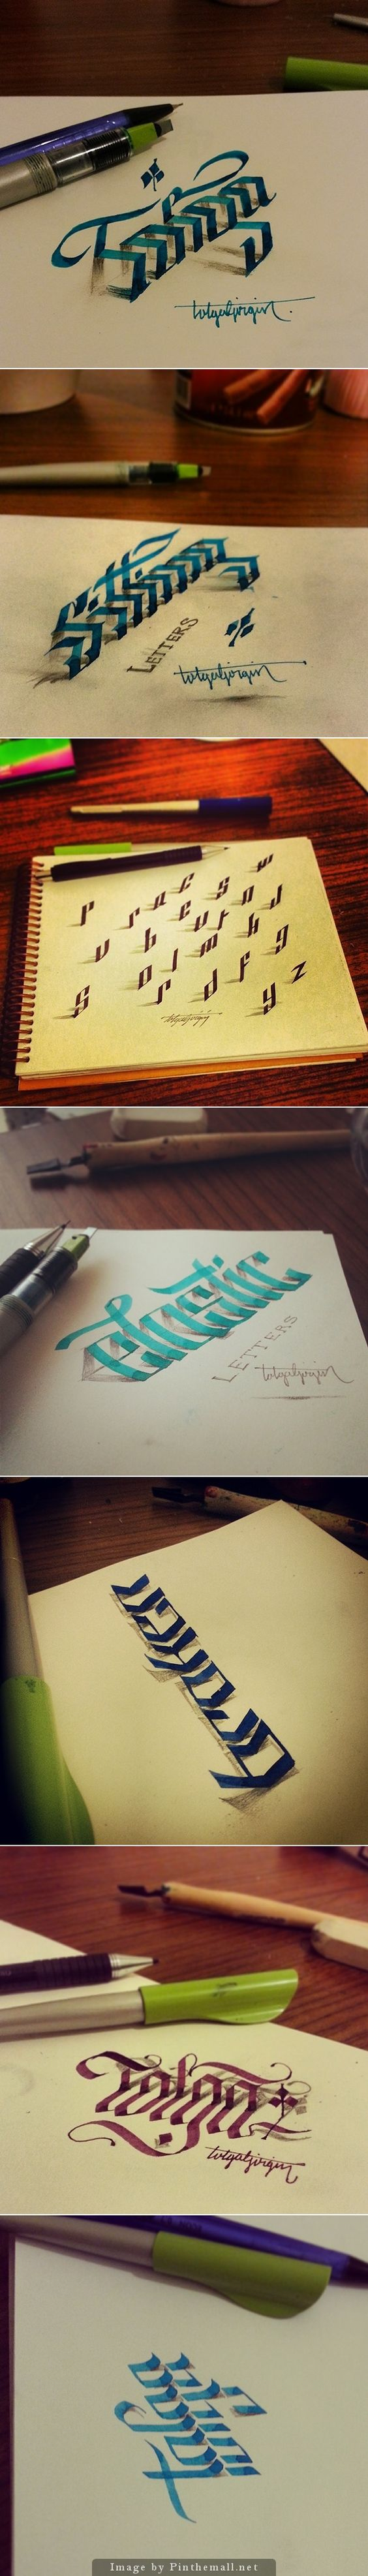 3D type by Tolga --- Howwwwww?? I wish I'd known how to do this while u was in graphic arts class